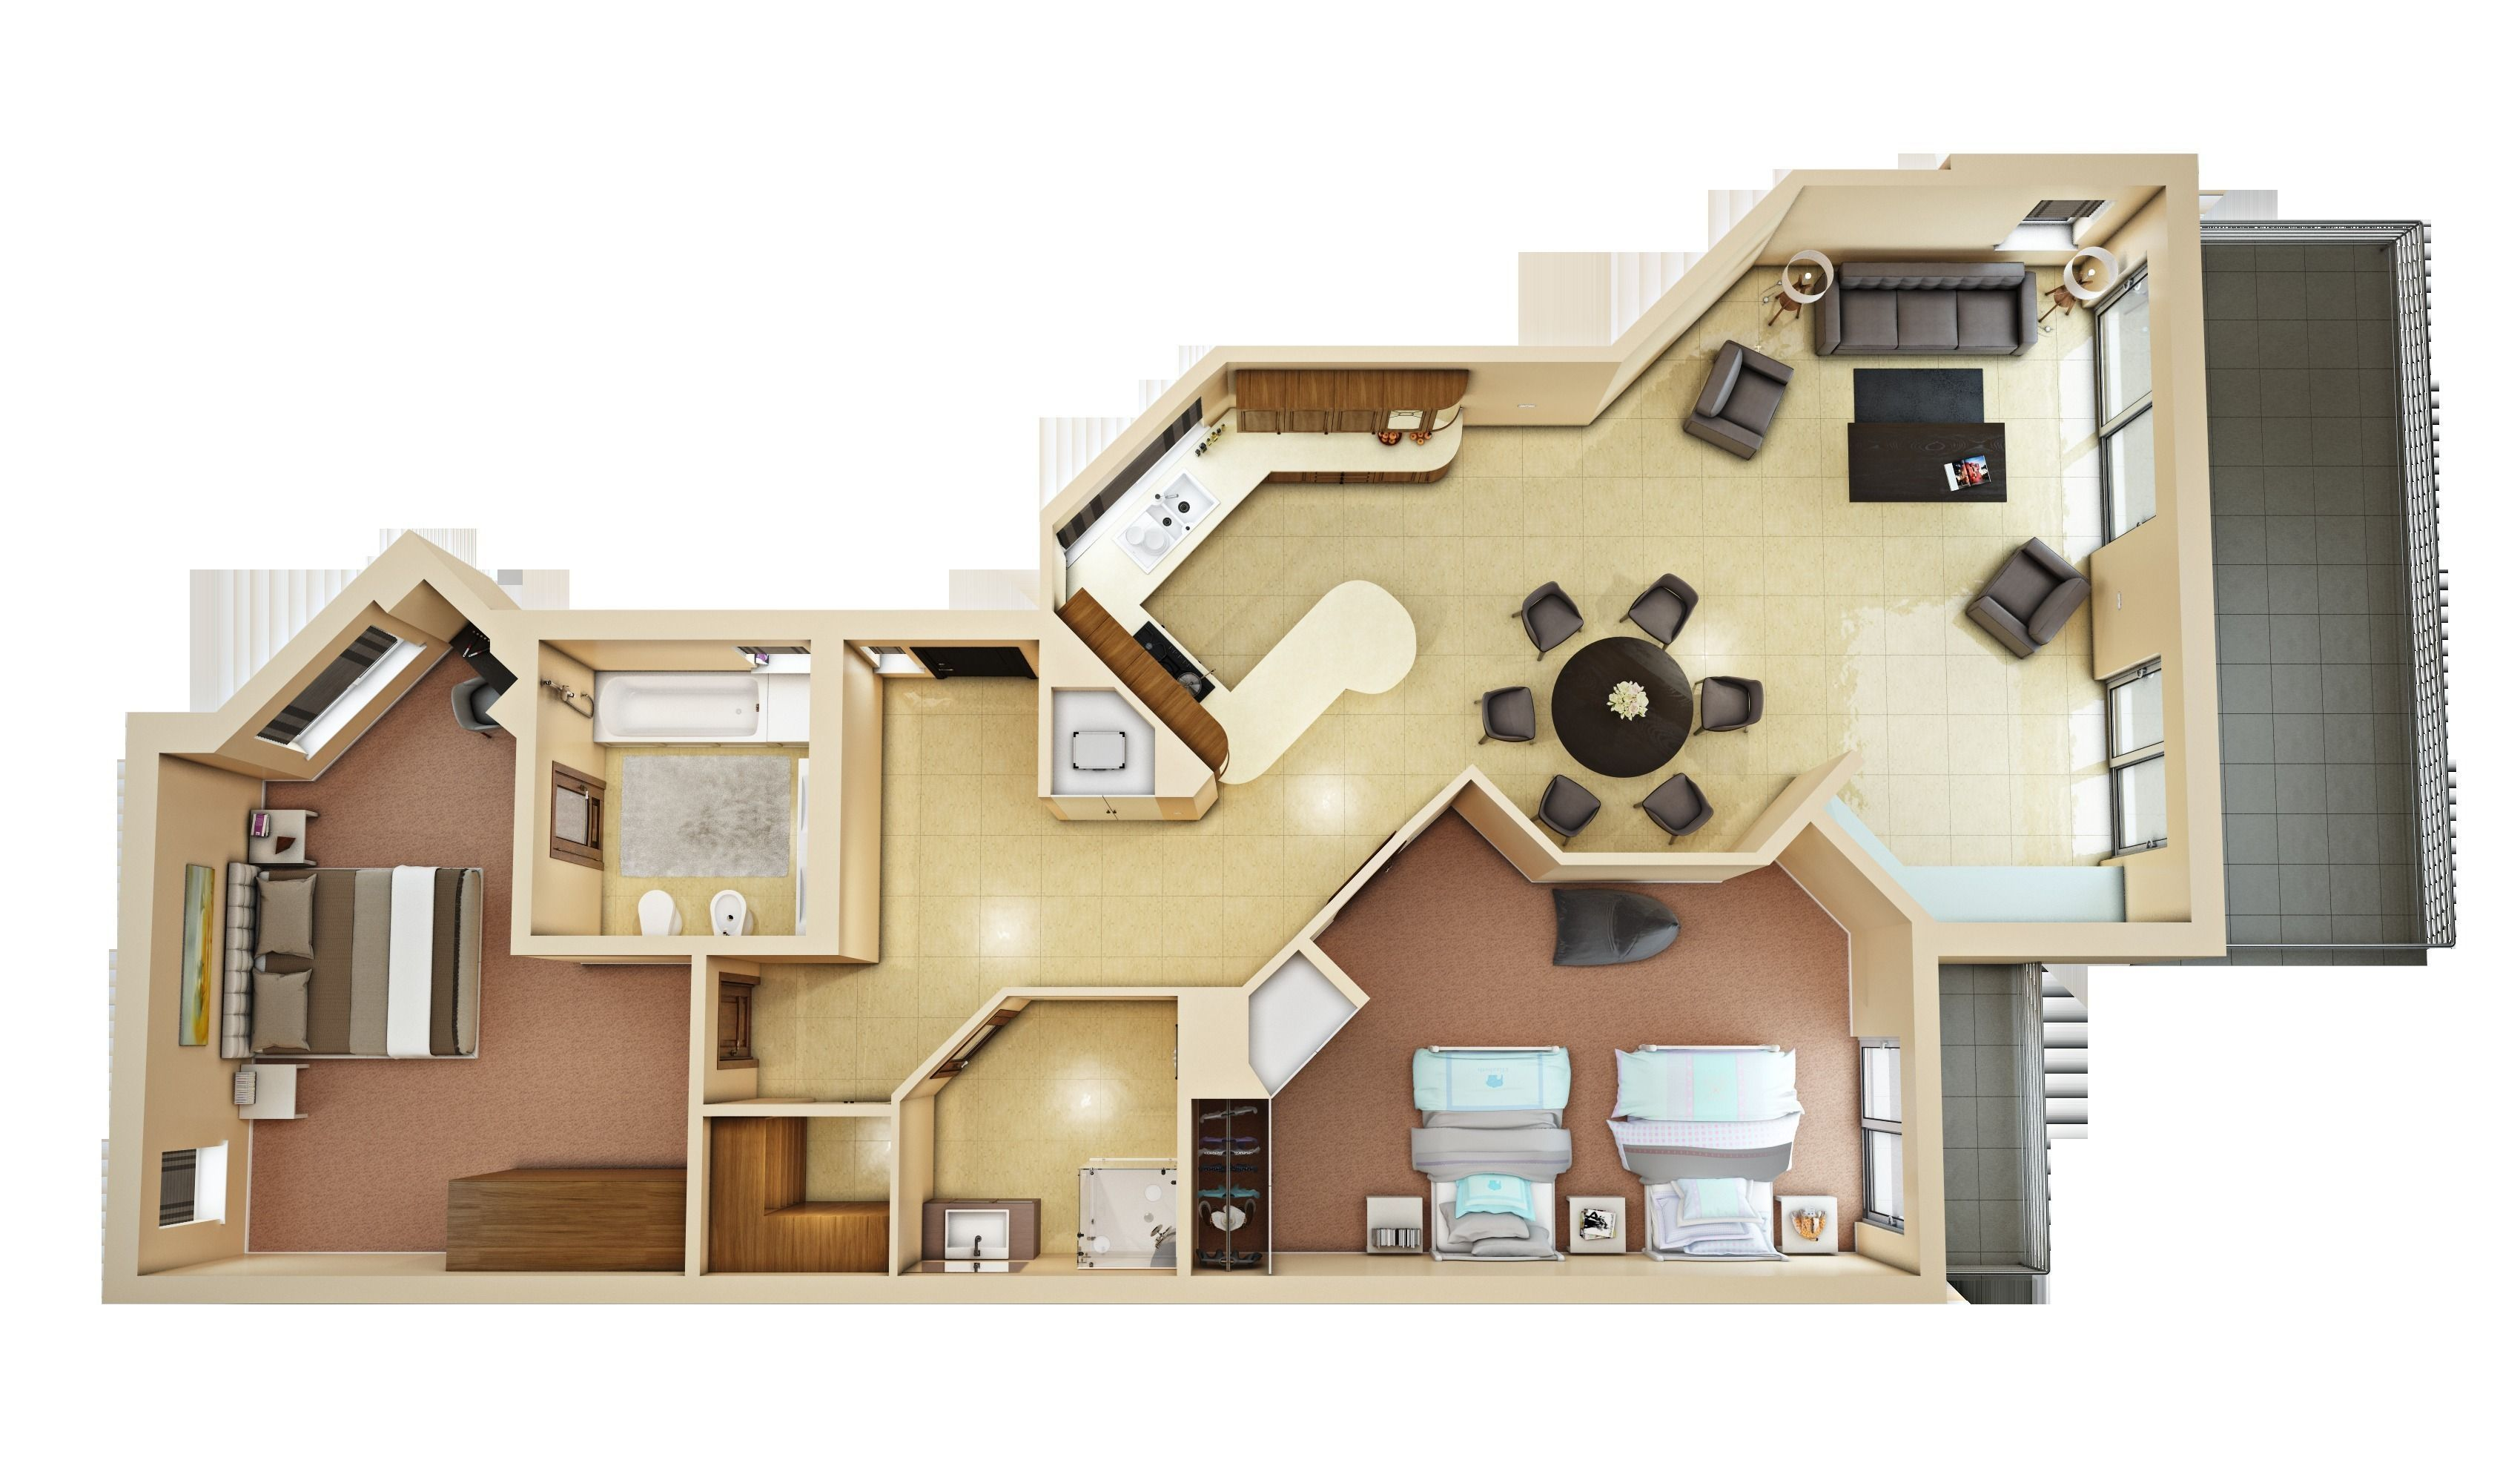 3d floor plan 4 3d model max 3d model house design